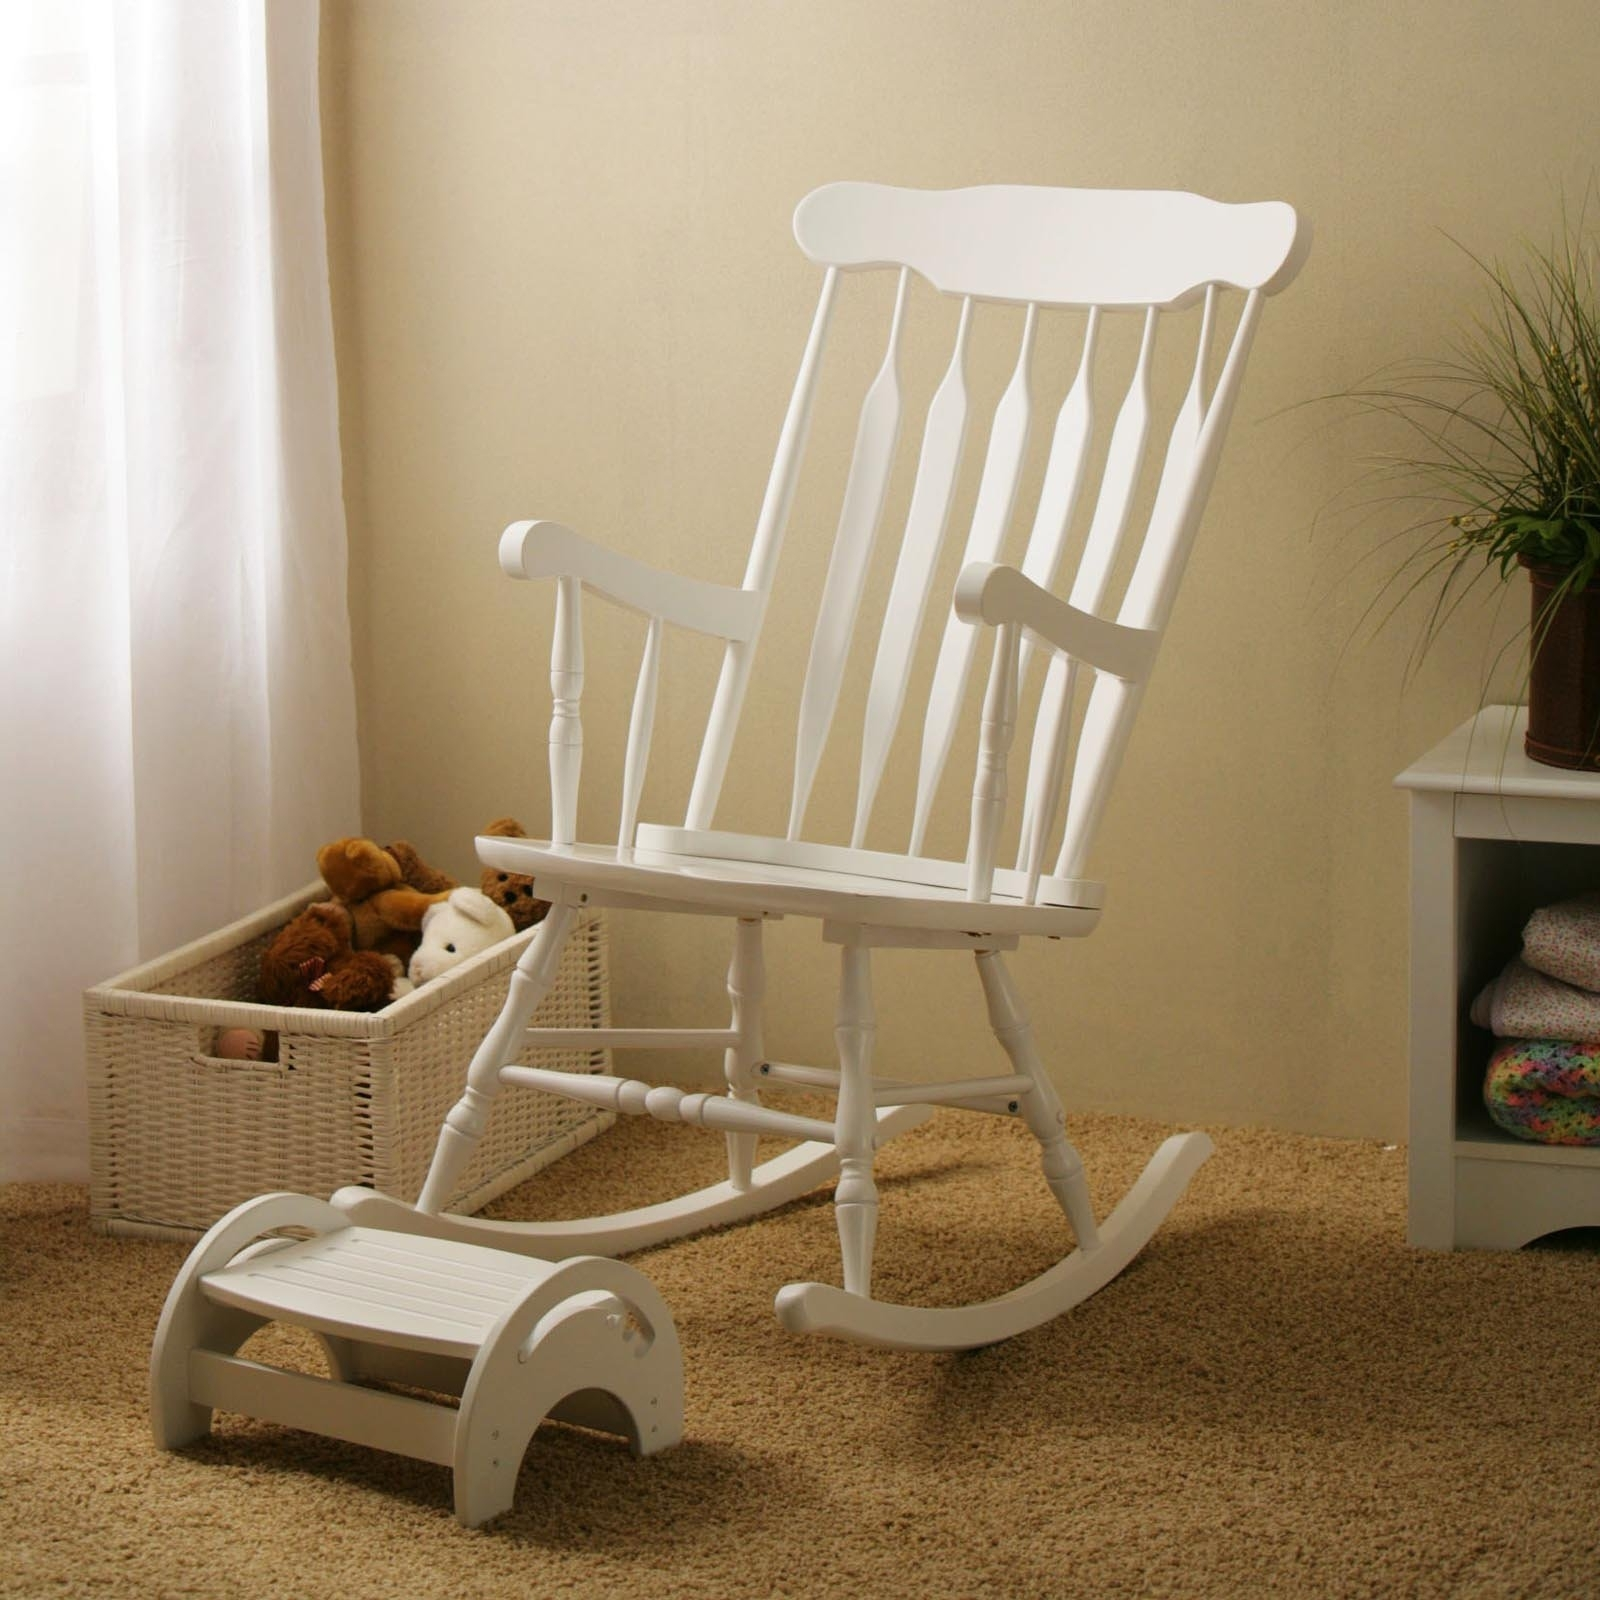 Famous Rocking Chairs For Nursery Within Original Rocking Chairs Nursery — Wilson Home Ideas : Healthy (View 5 of 15)